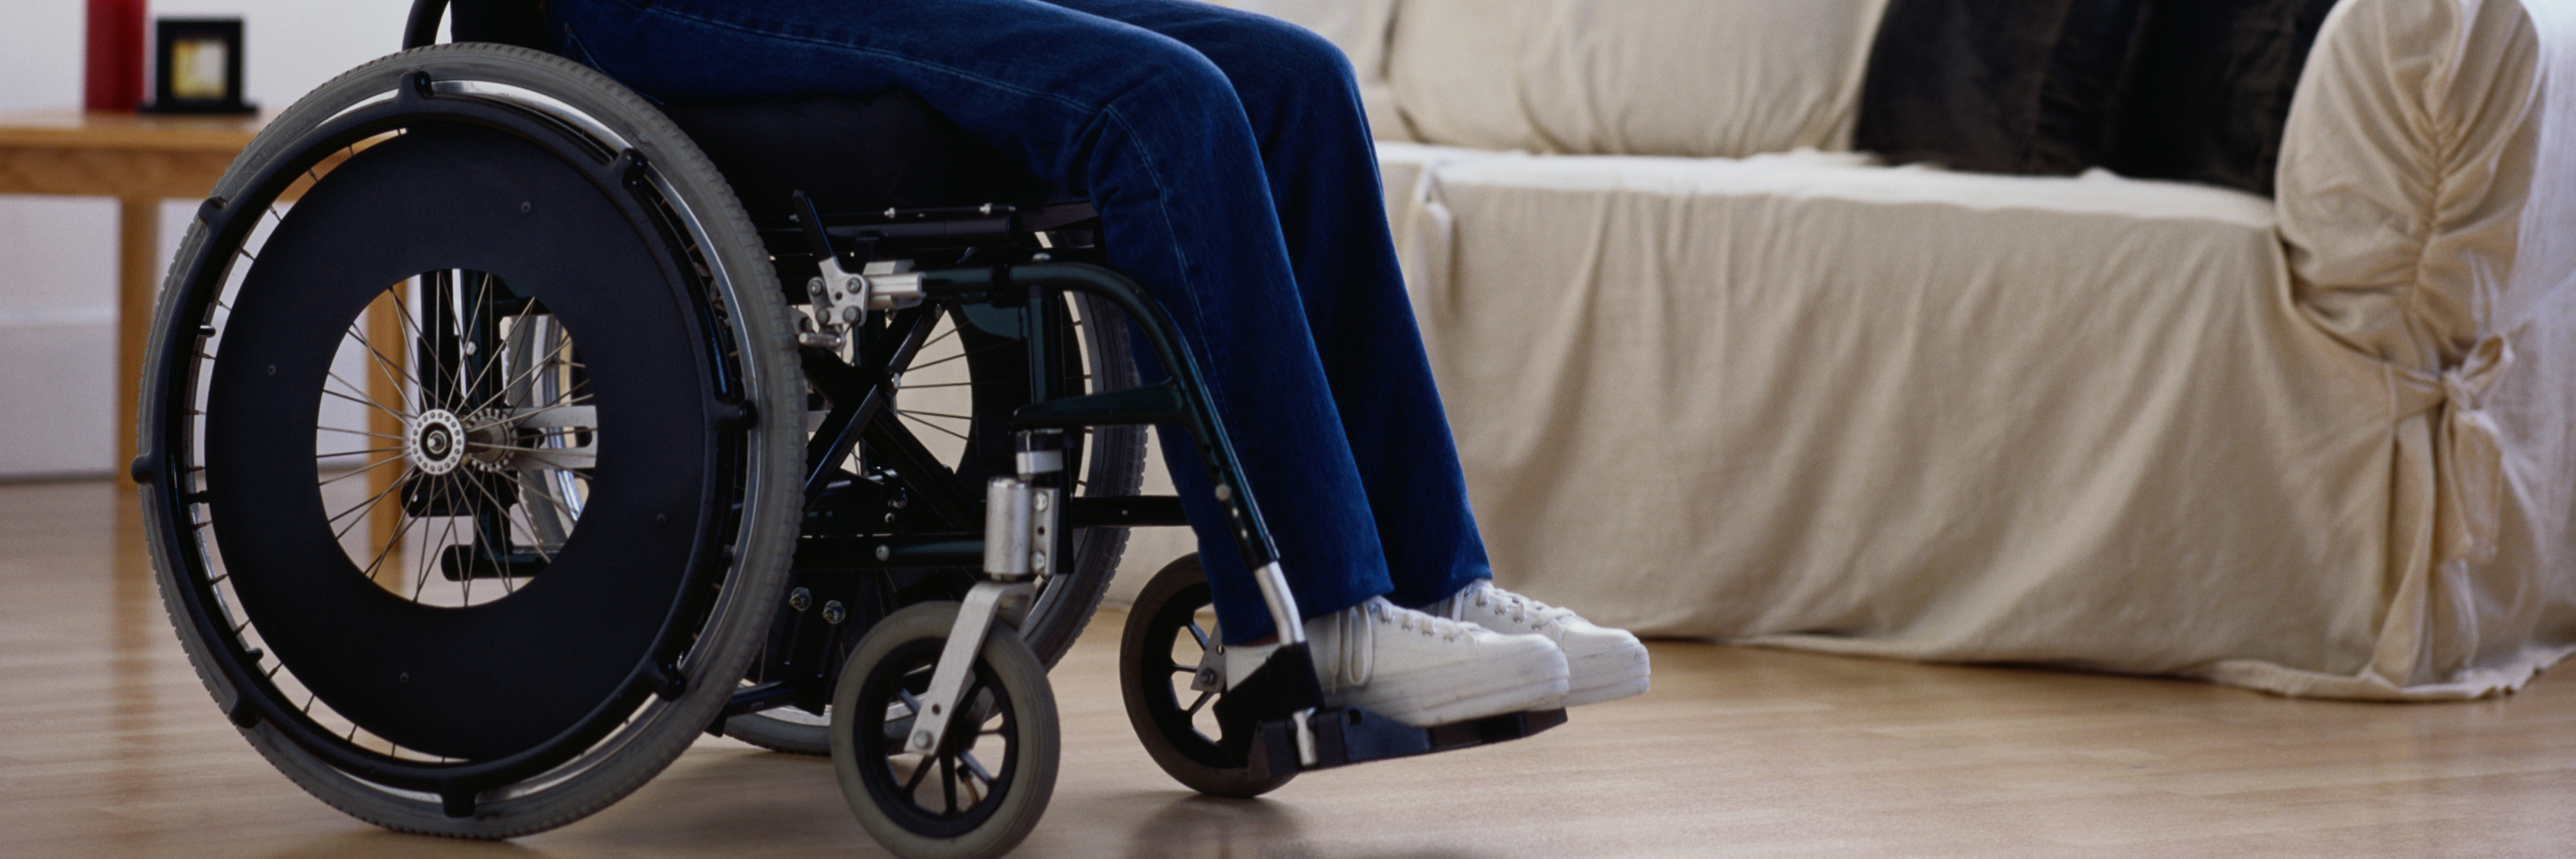 Woman sitting in wheelchair, looking towards windows, side view.